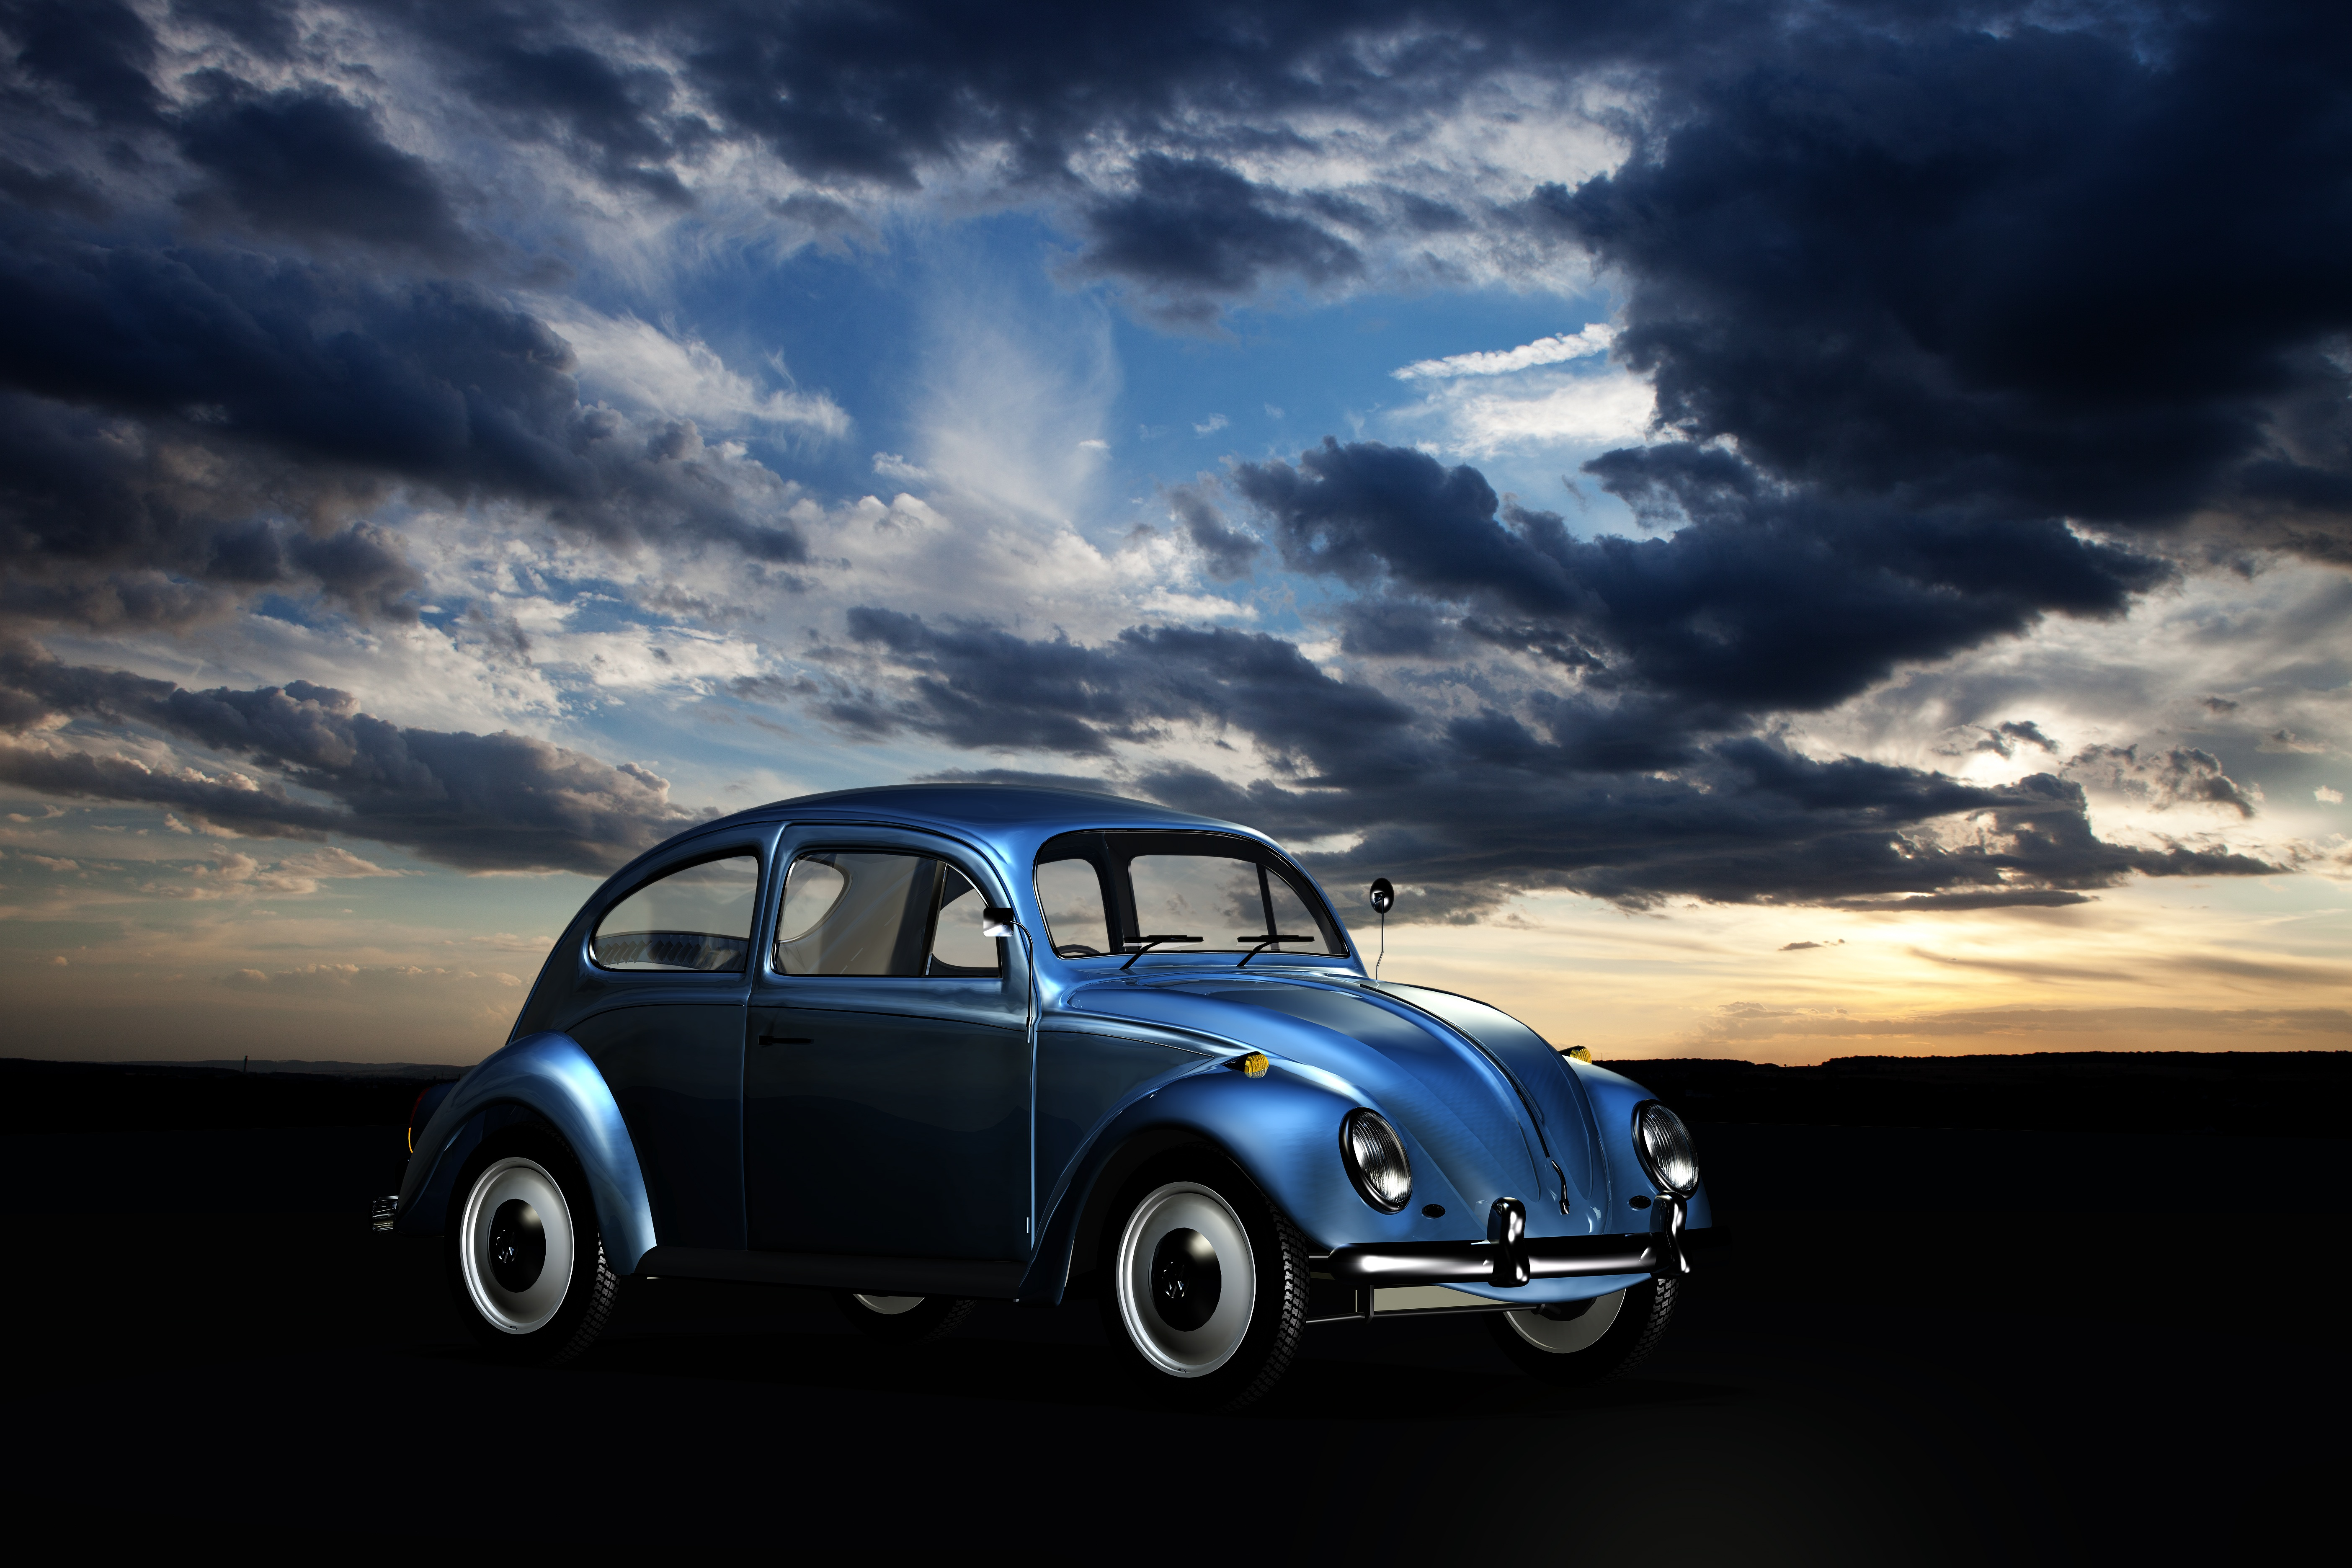 Black And White Car Wallpaper Beige Volkswagen Beetle 183 Free Stock Photo